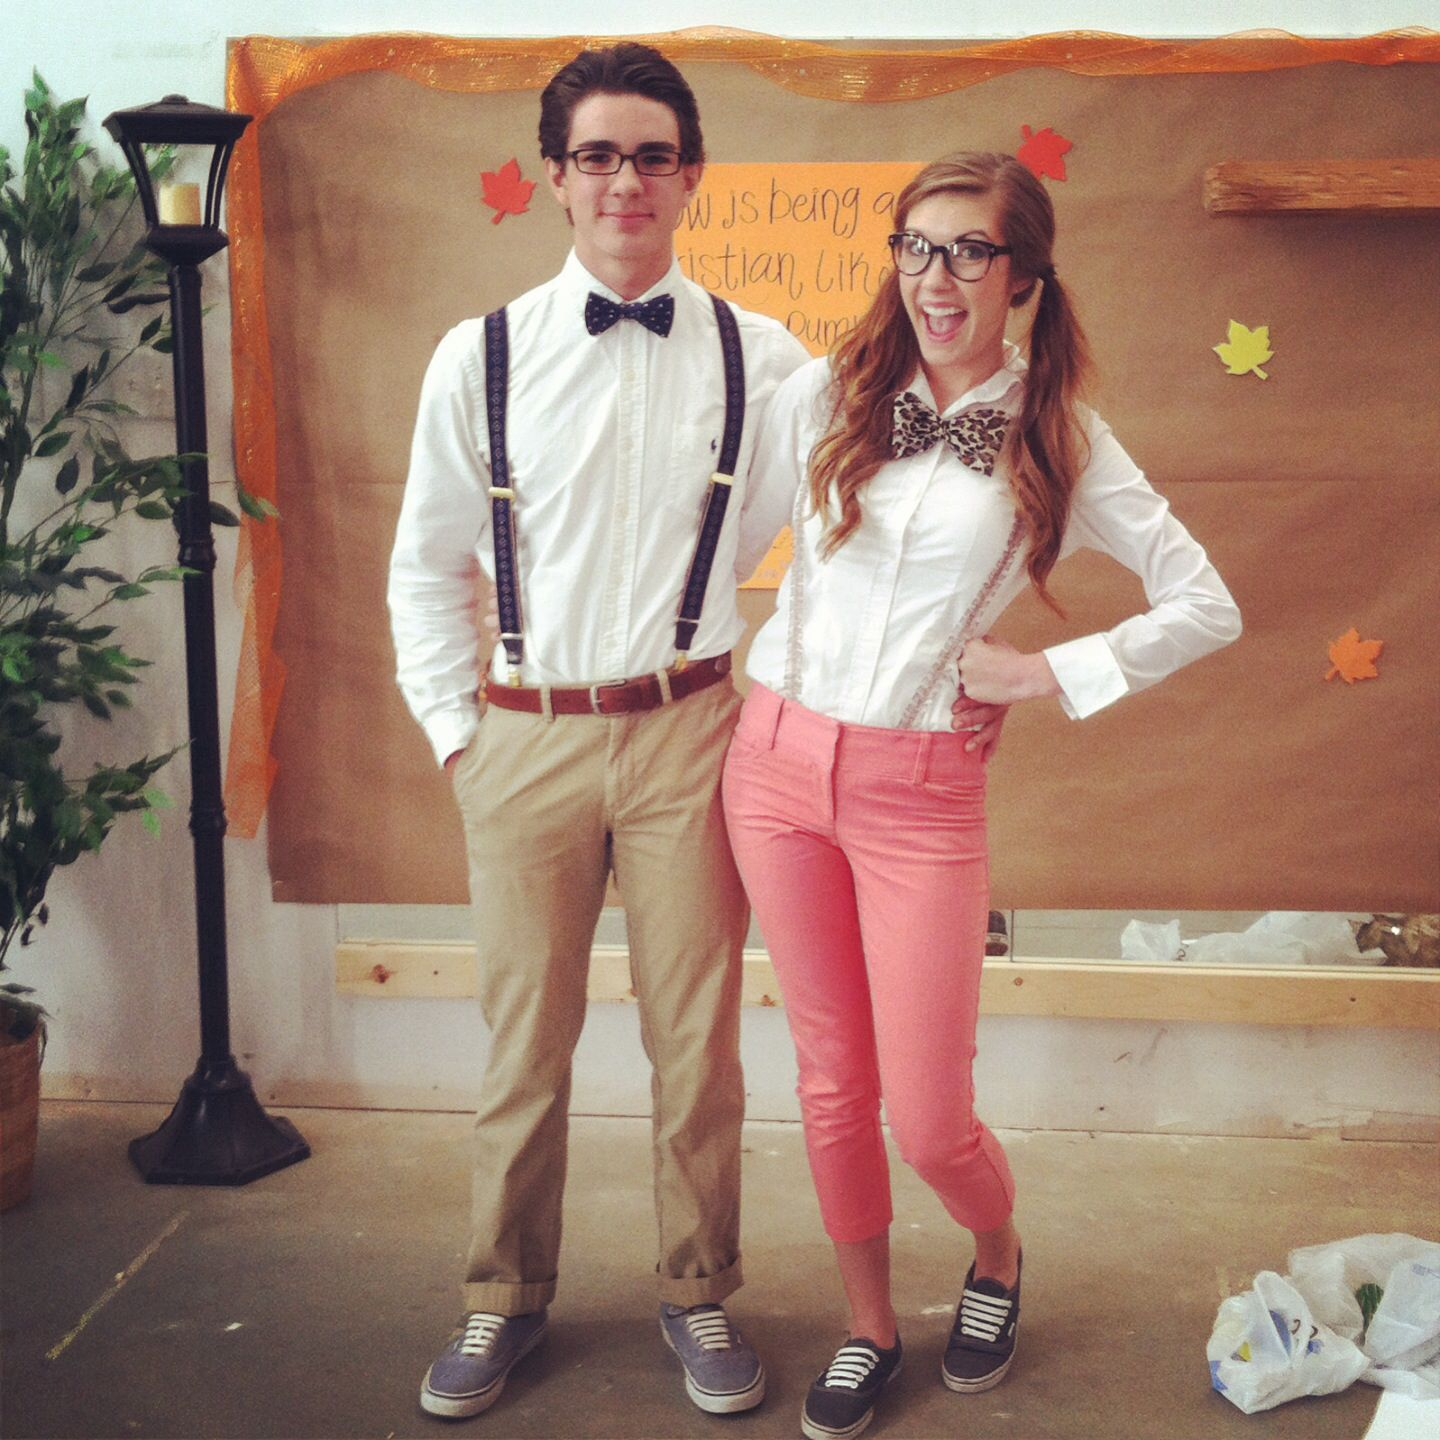 8 cheap halloween costumes to make in minutes nerd costumes 8 cheap halloween costumes to make in minutes diy nerd solutioingenieria Image collections